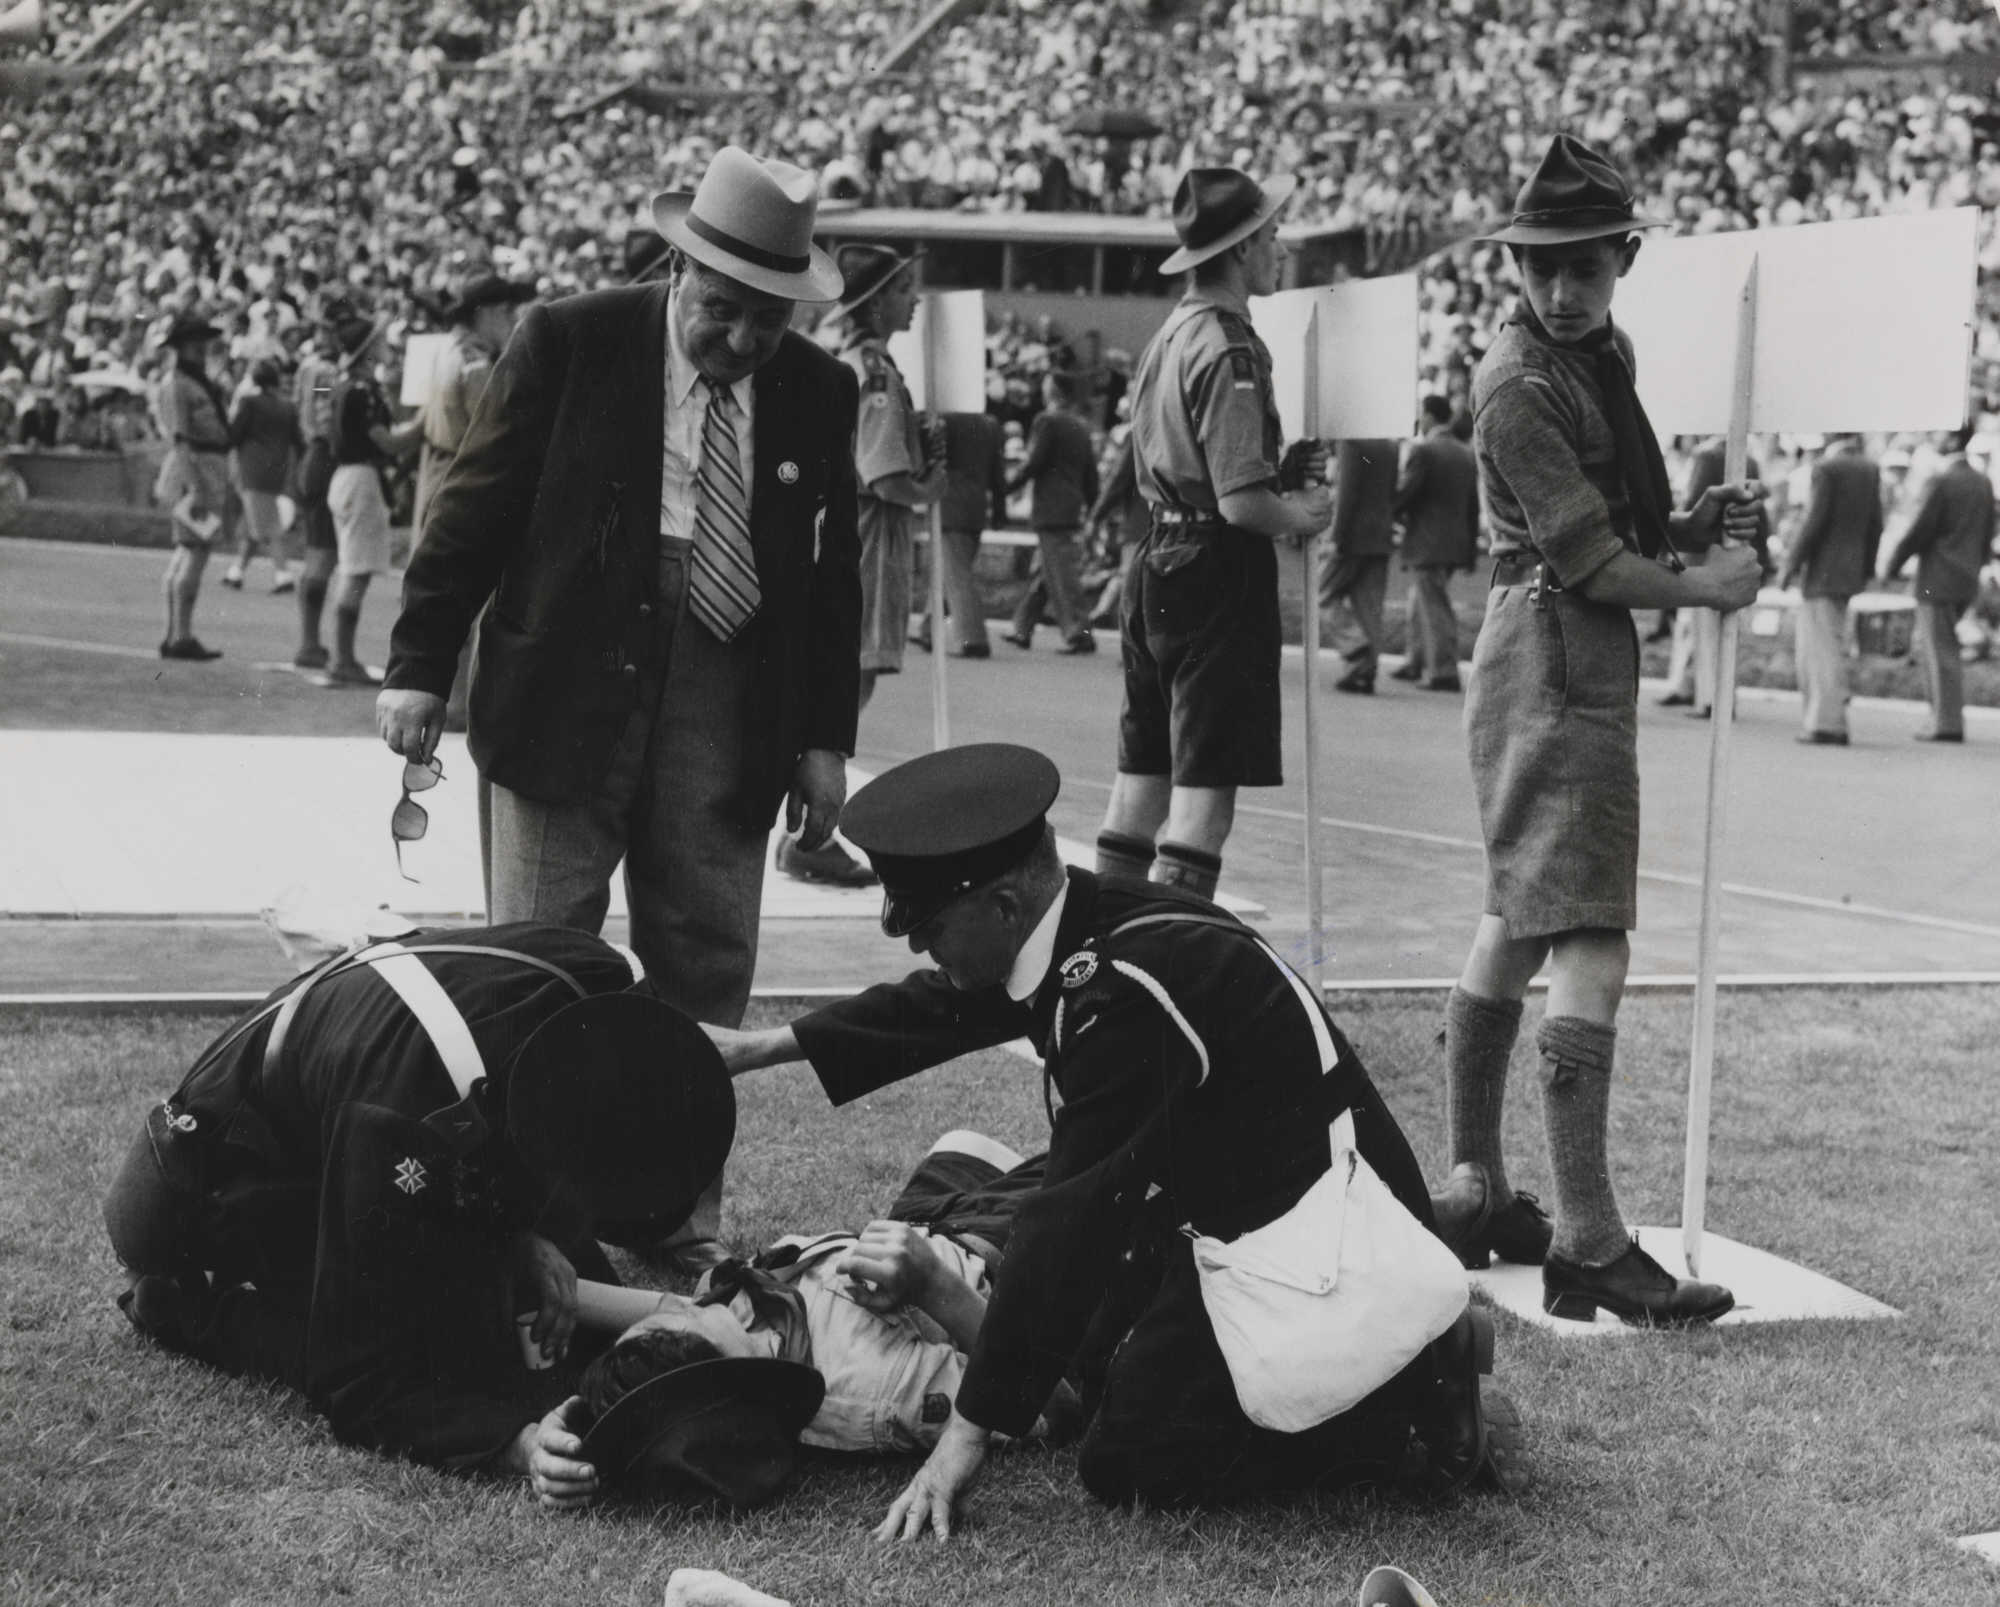 file a casualty at the olympic games london 1948 7649953728 jpg